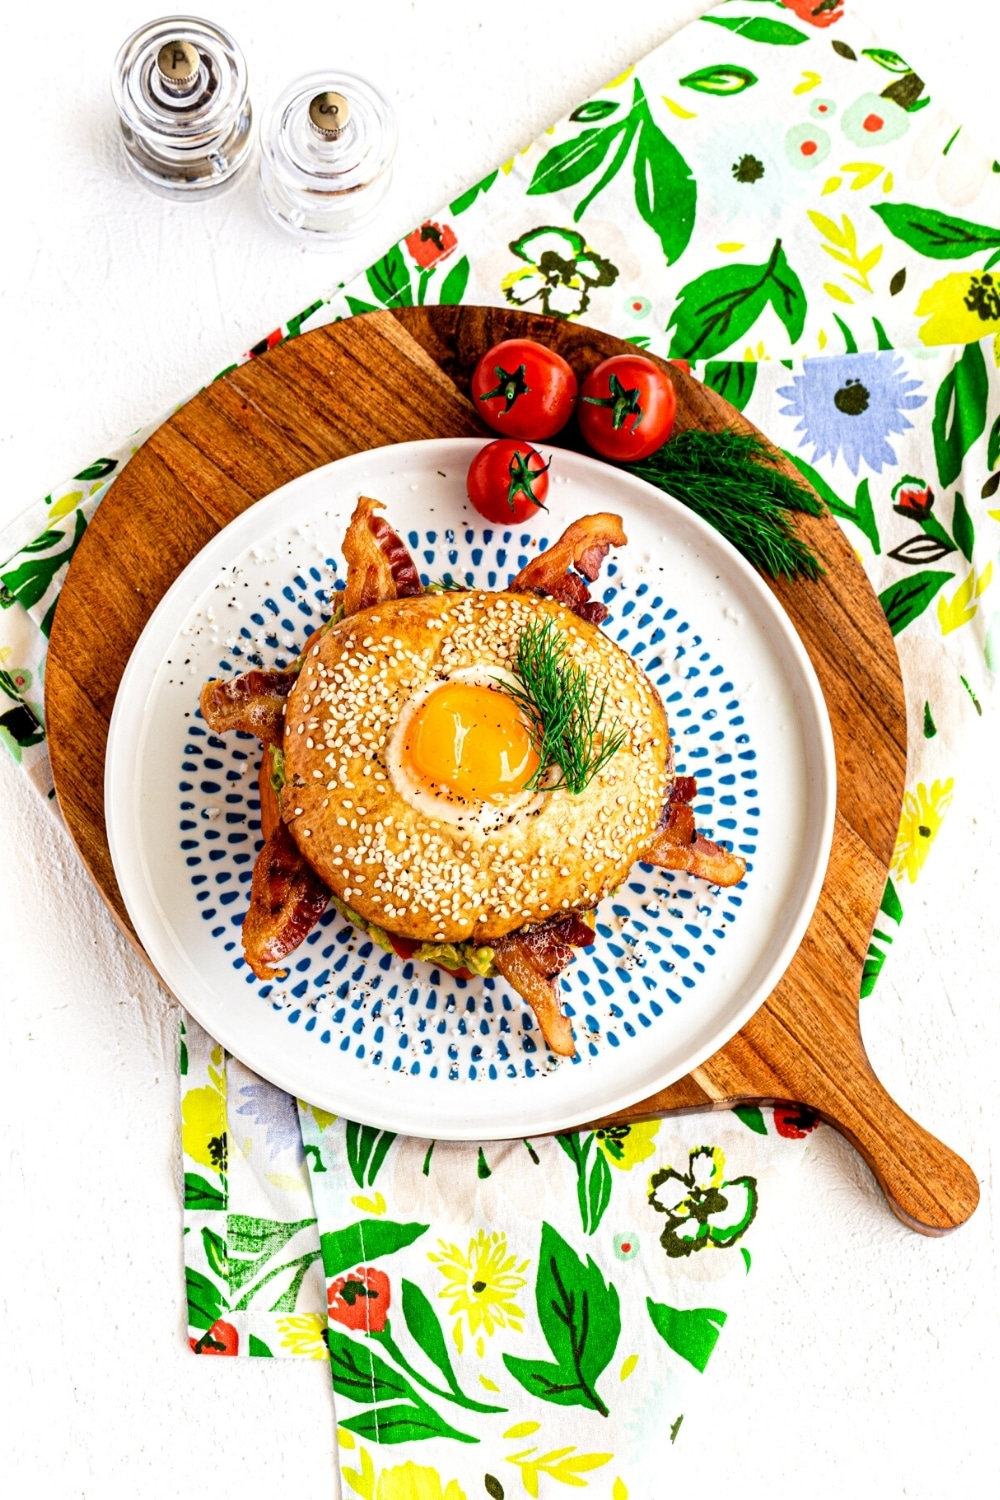 A bagel breakfast sandwich plated and served on a wooden board.